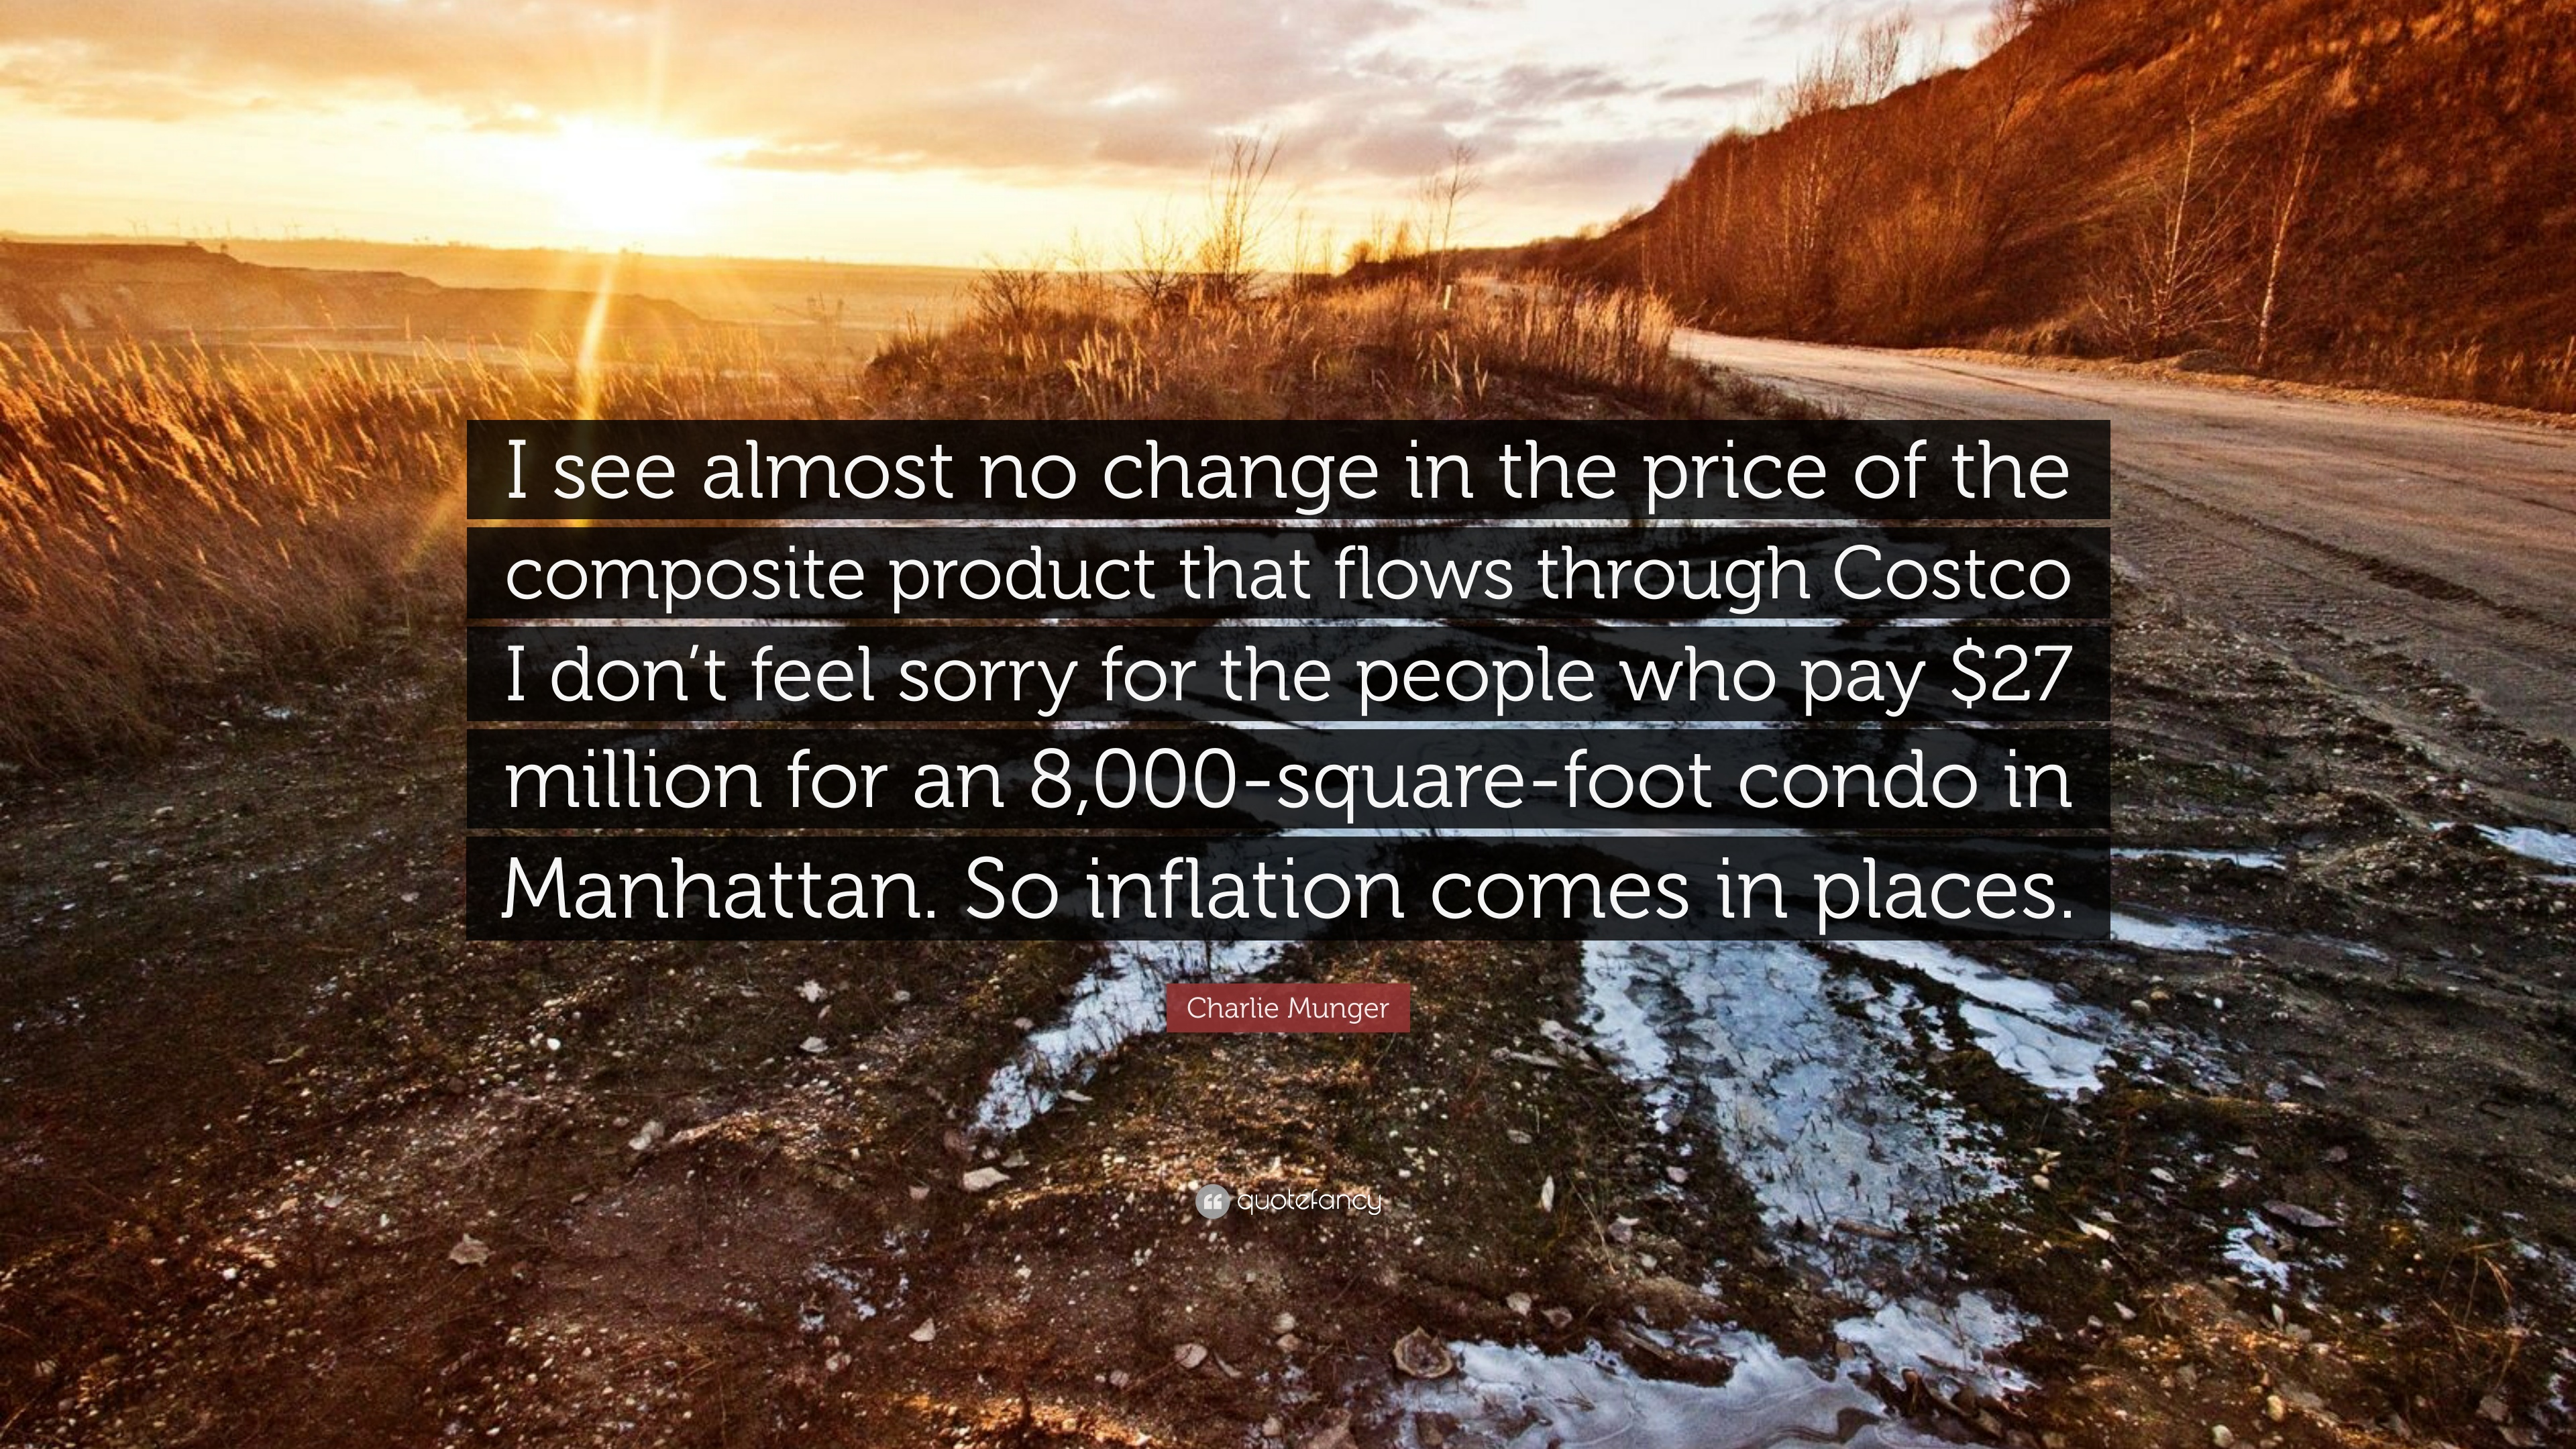 charlie munger quote i see almost no change in the price of the composite product that flows through costco i don t feel sorry for the people 7 wallpapers quotefancy charlie munger quote i see almost no